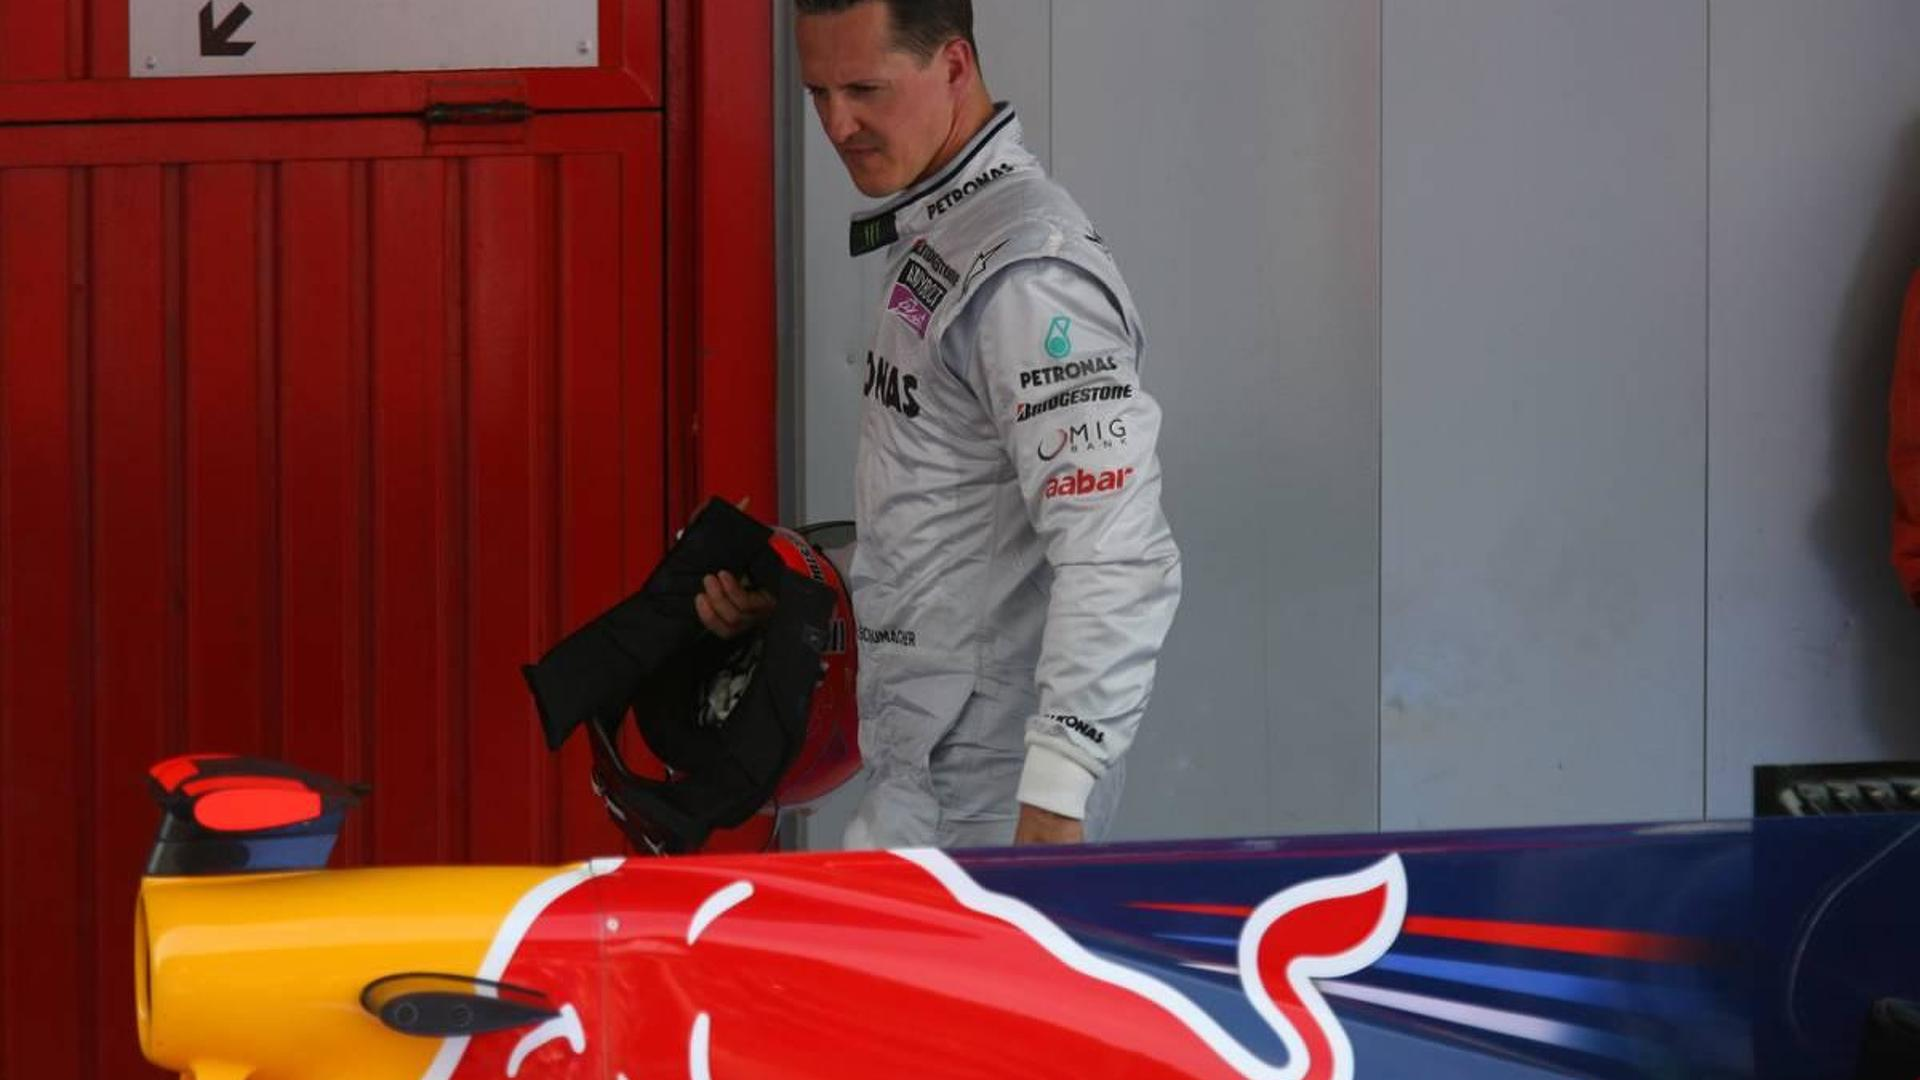 Schumacher would be winning with Red Bull car - Ecclestone